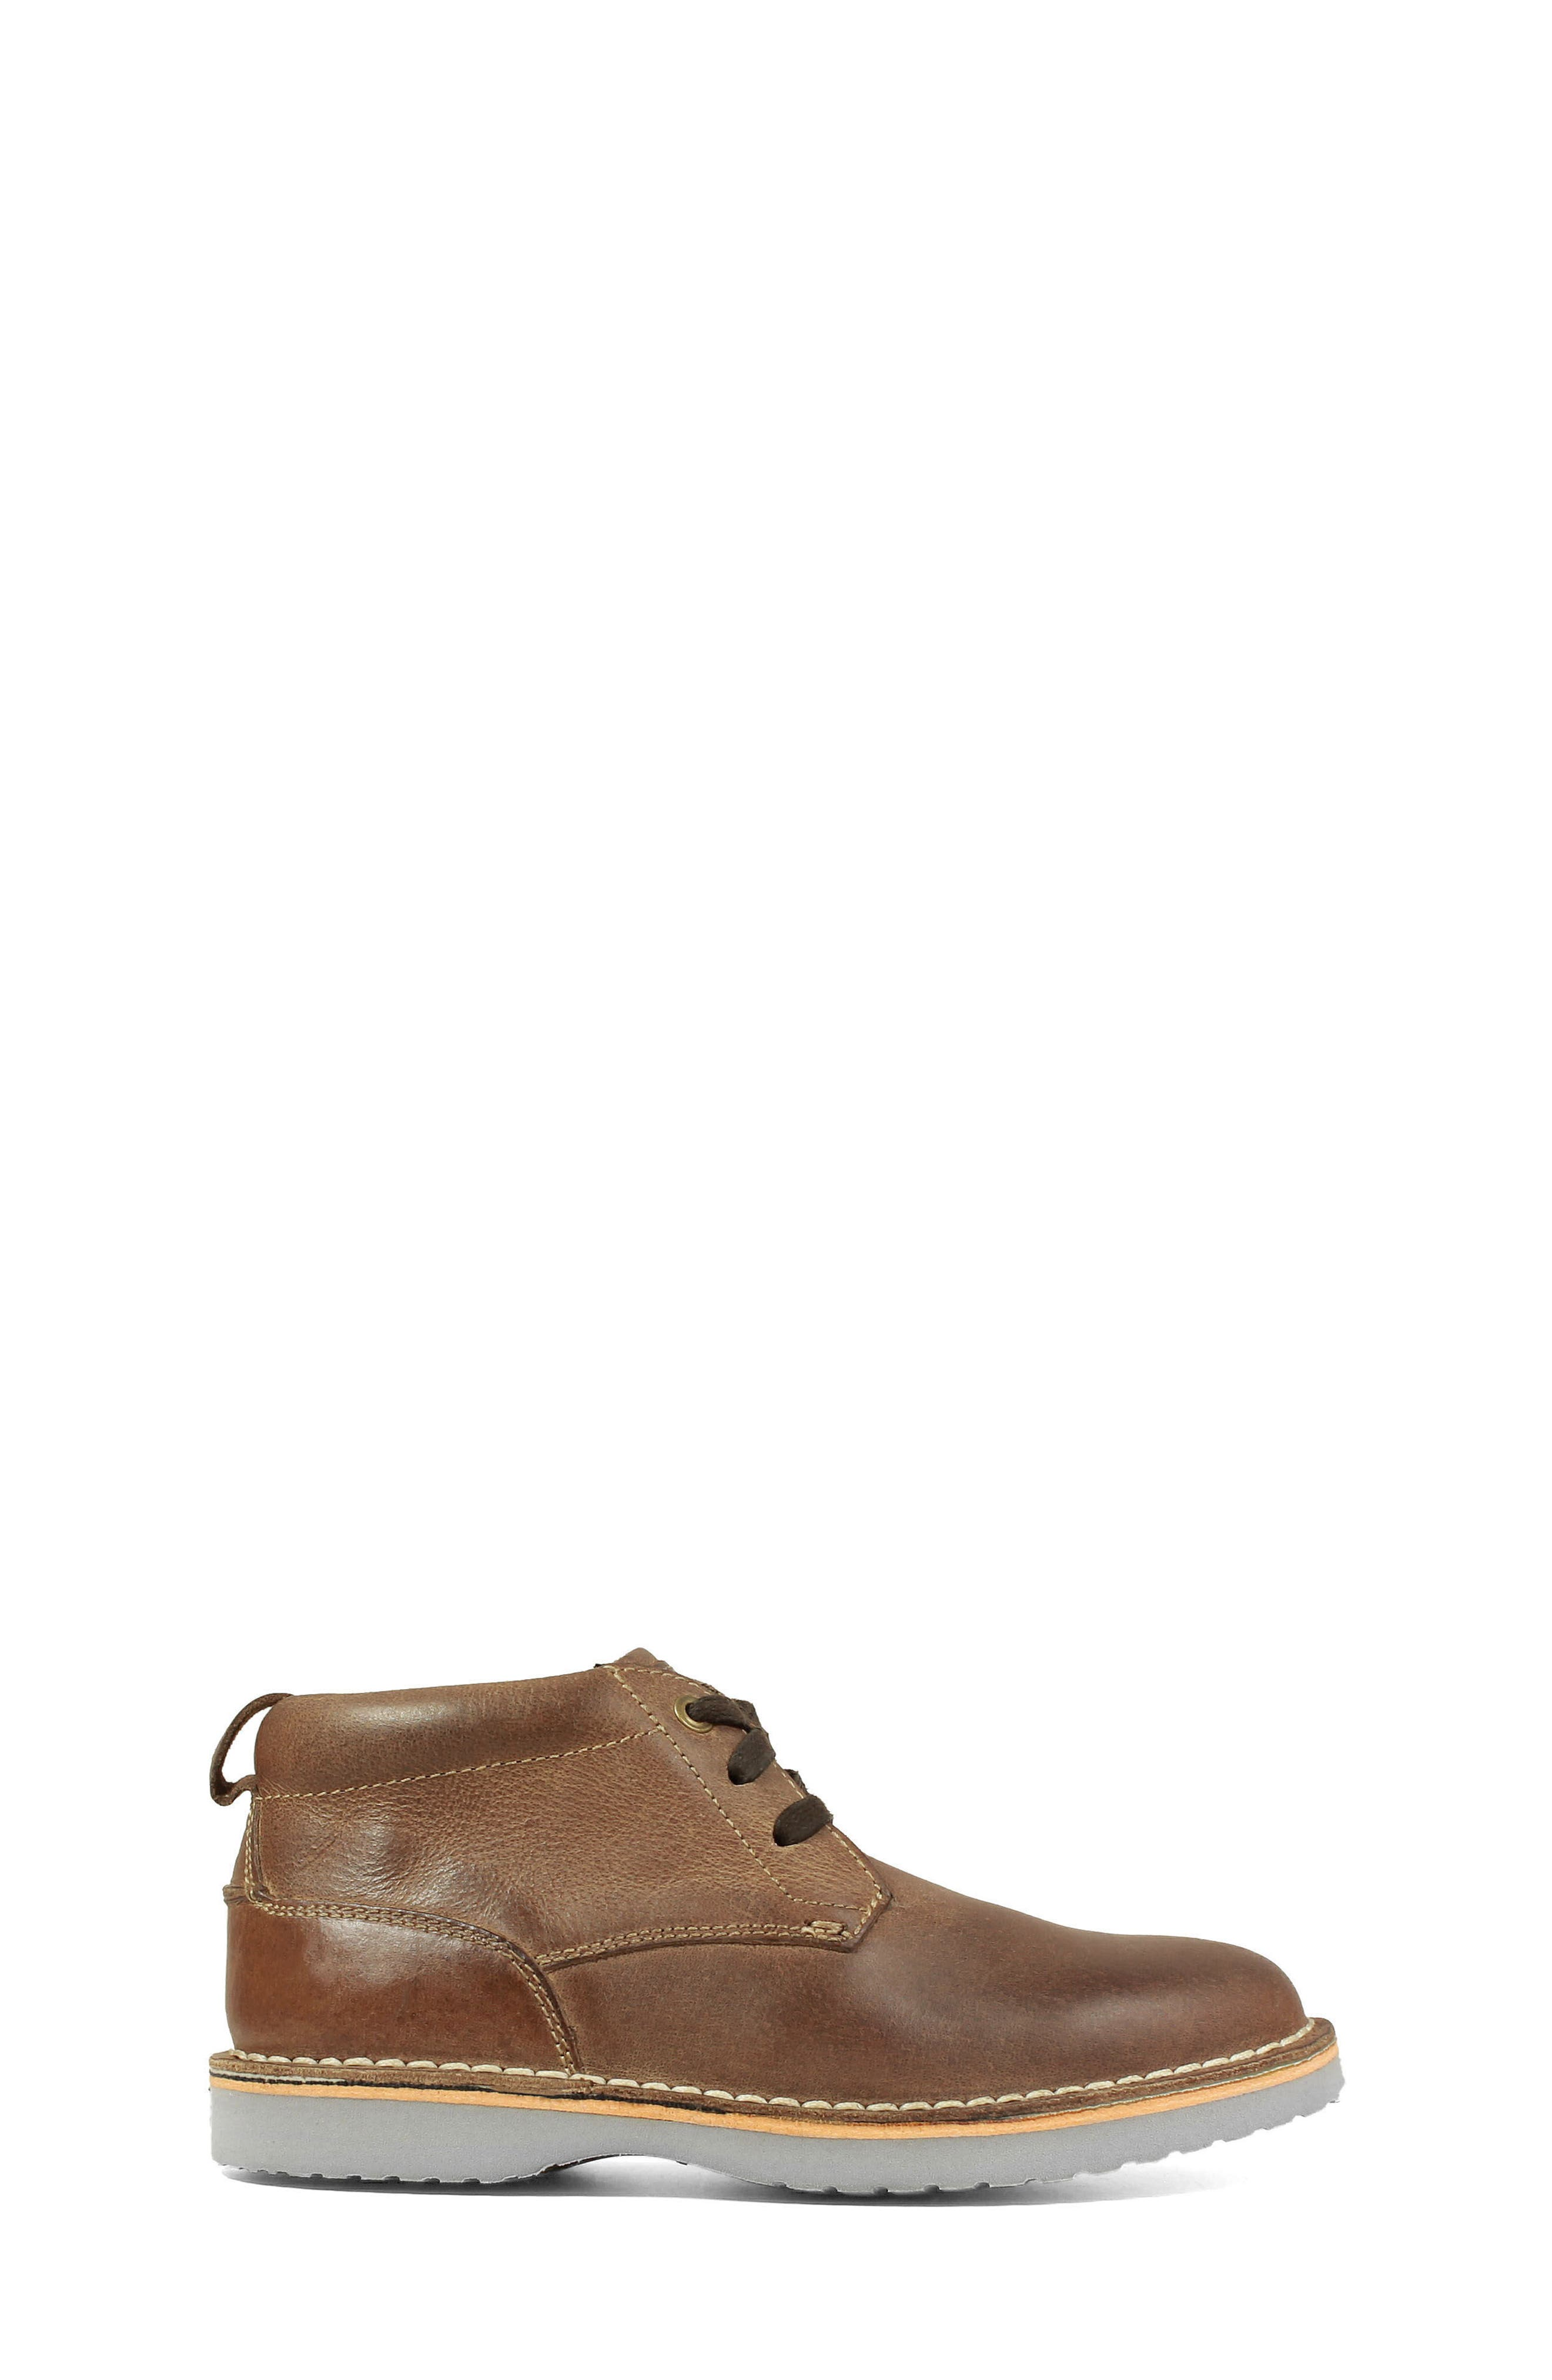 Chukka Boot,                             Alternate thumbnail 3, color,                             BROWN CRAZY HORSE LEATHER